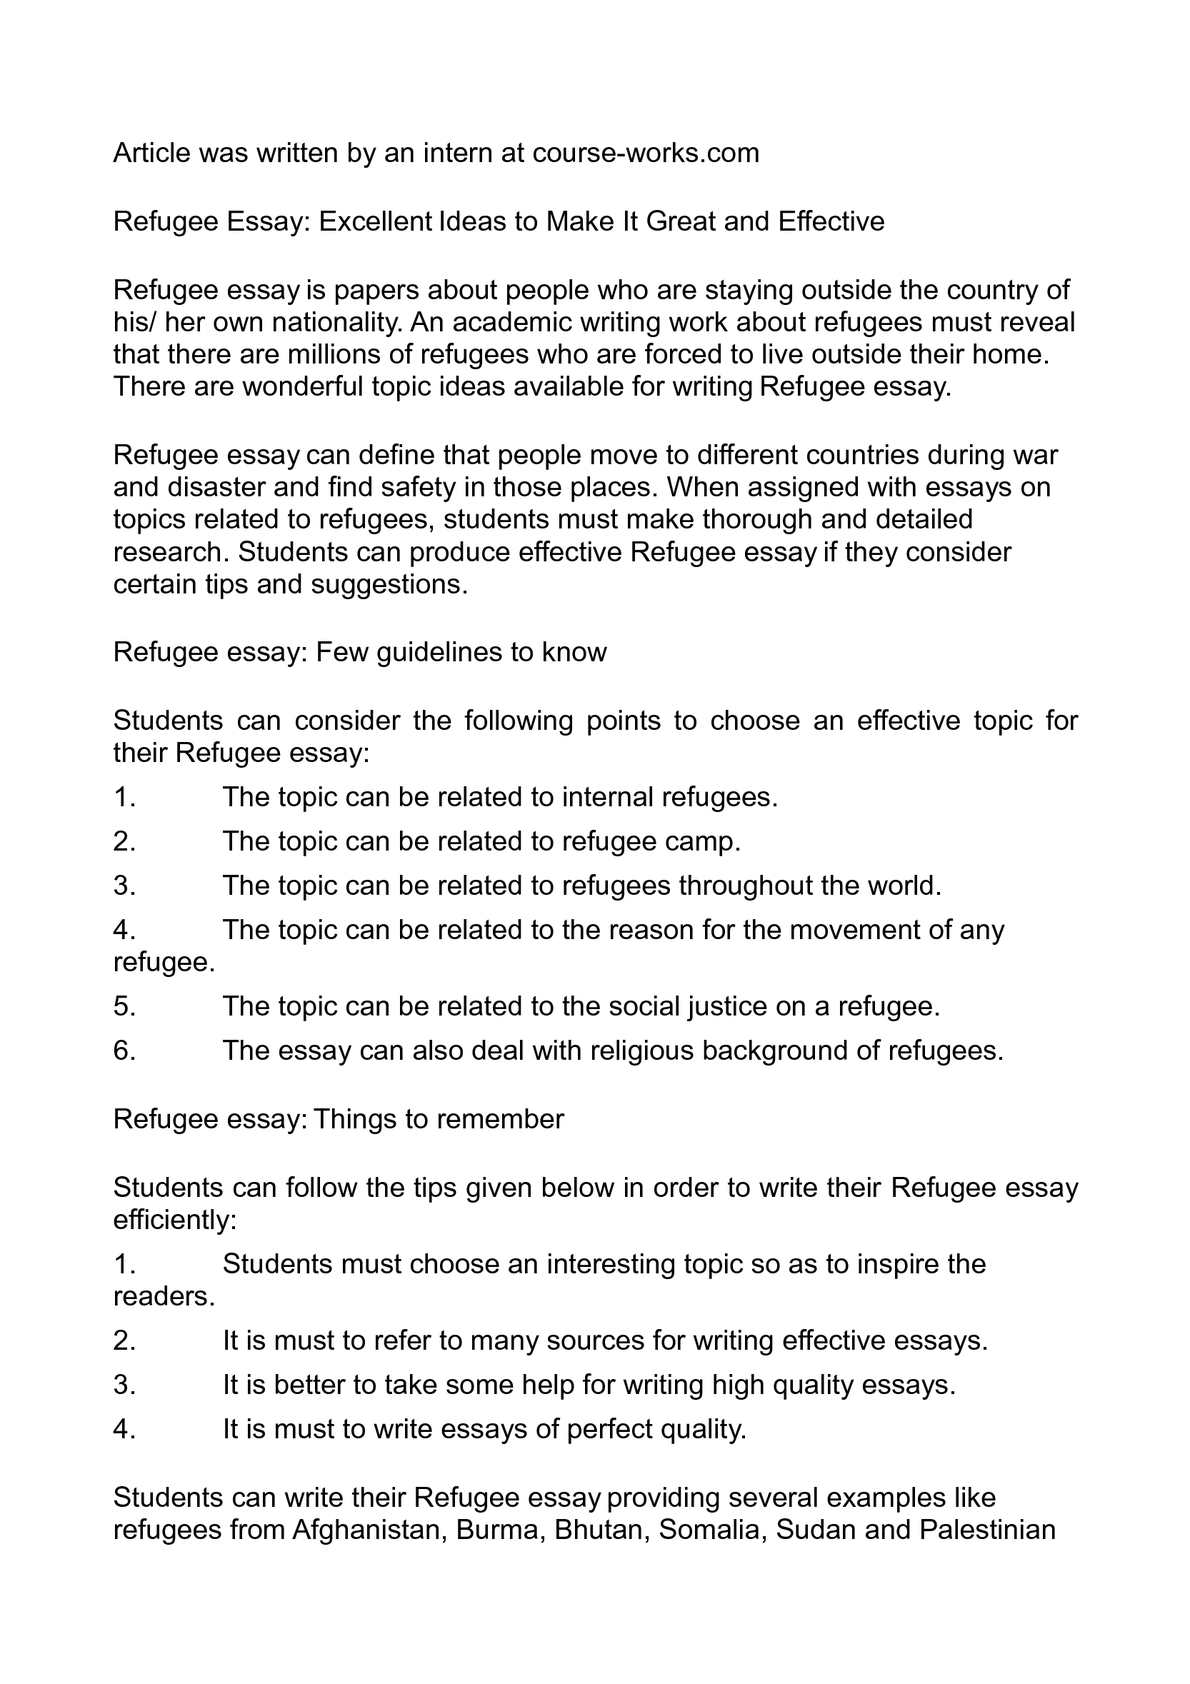 Write an essay about refugees